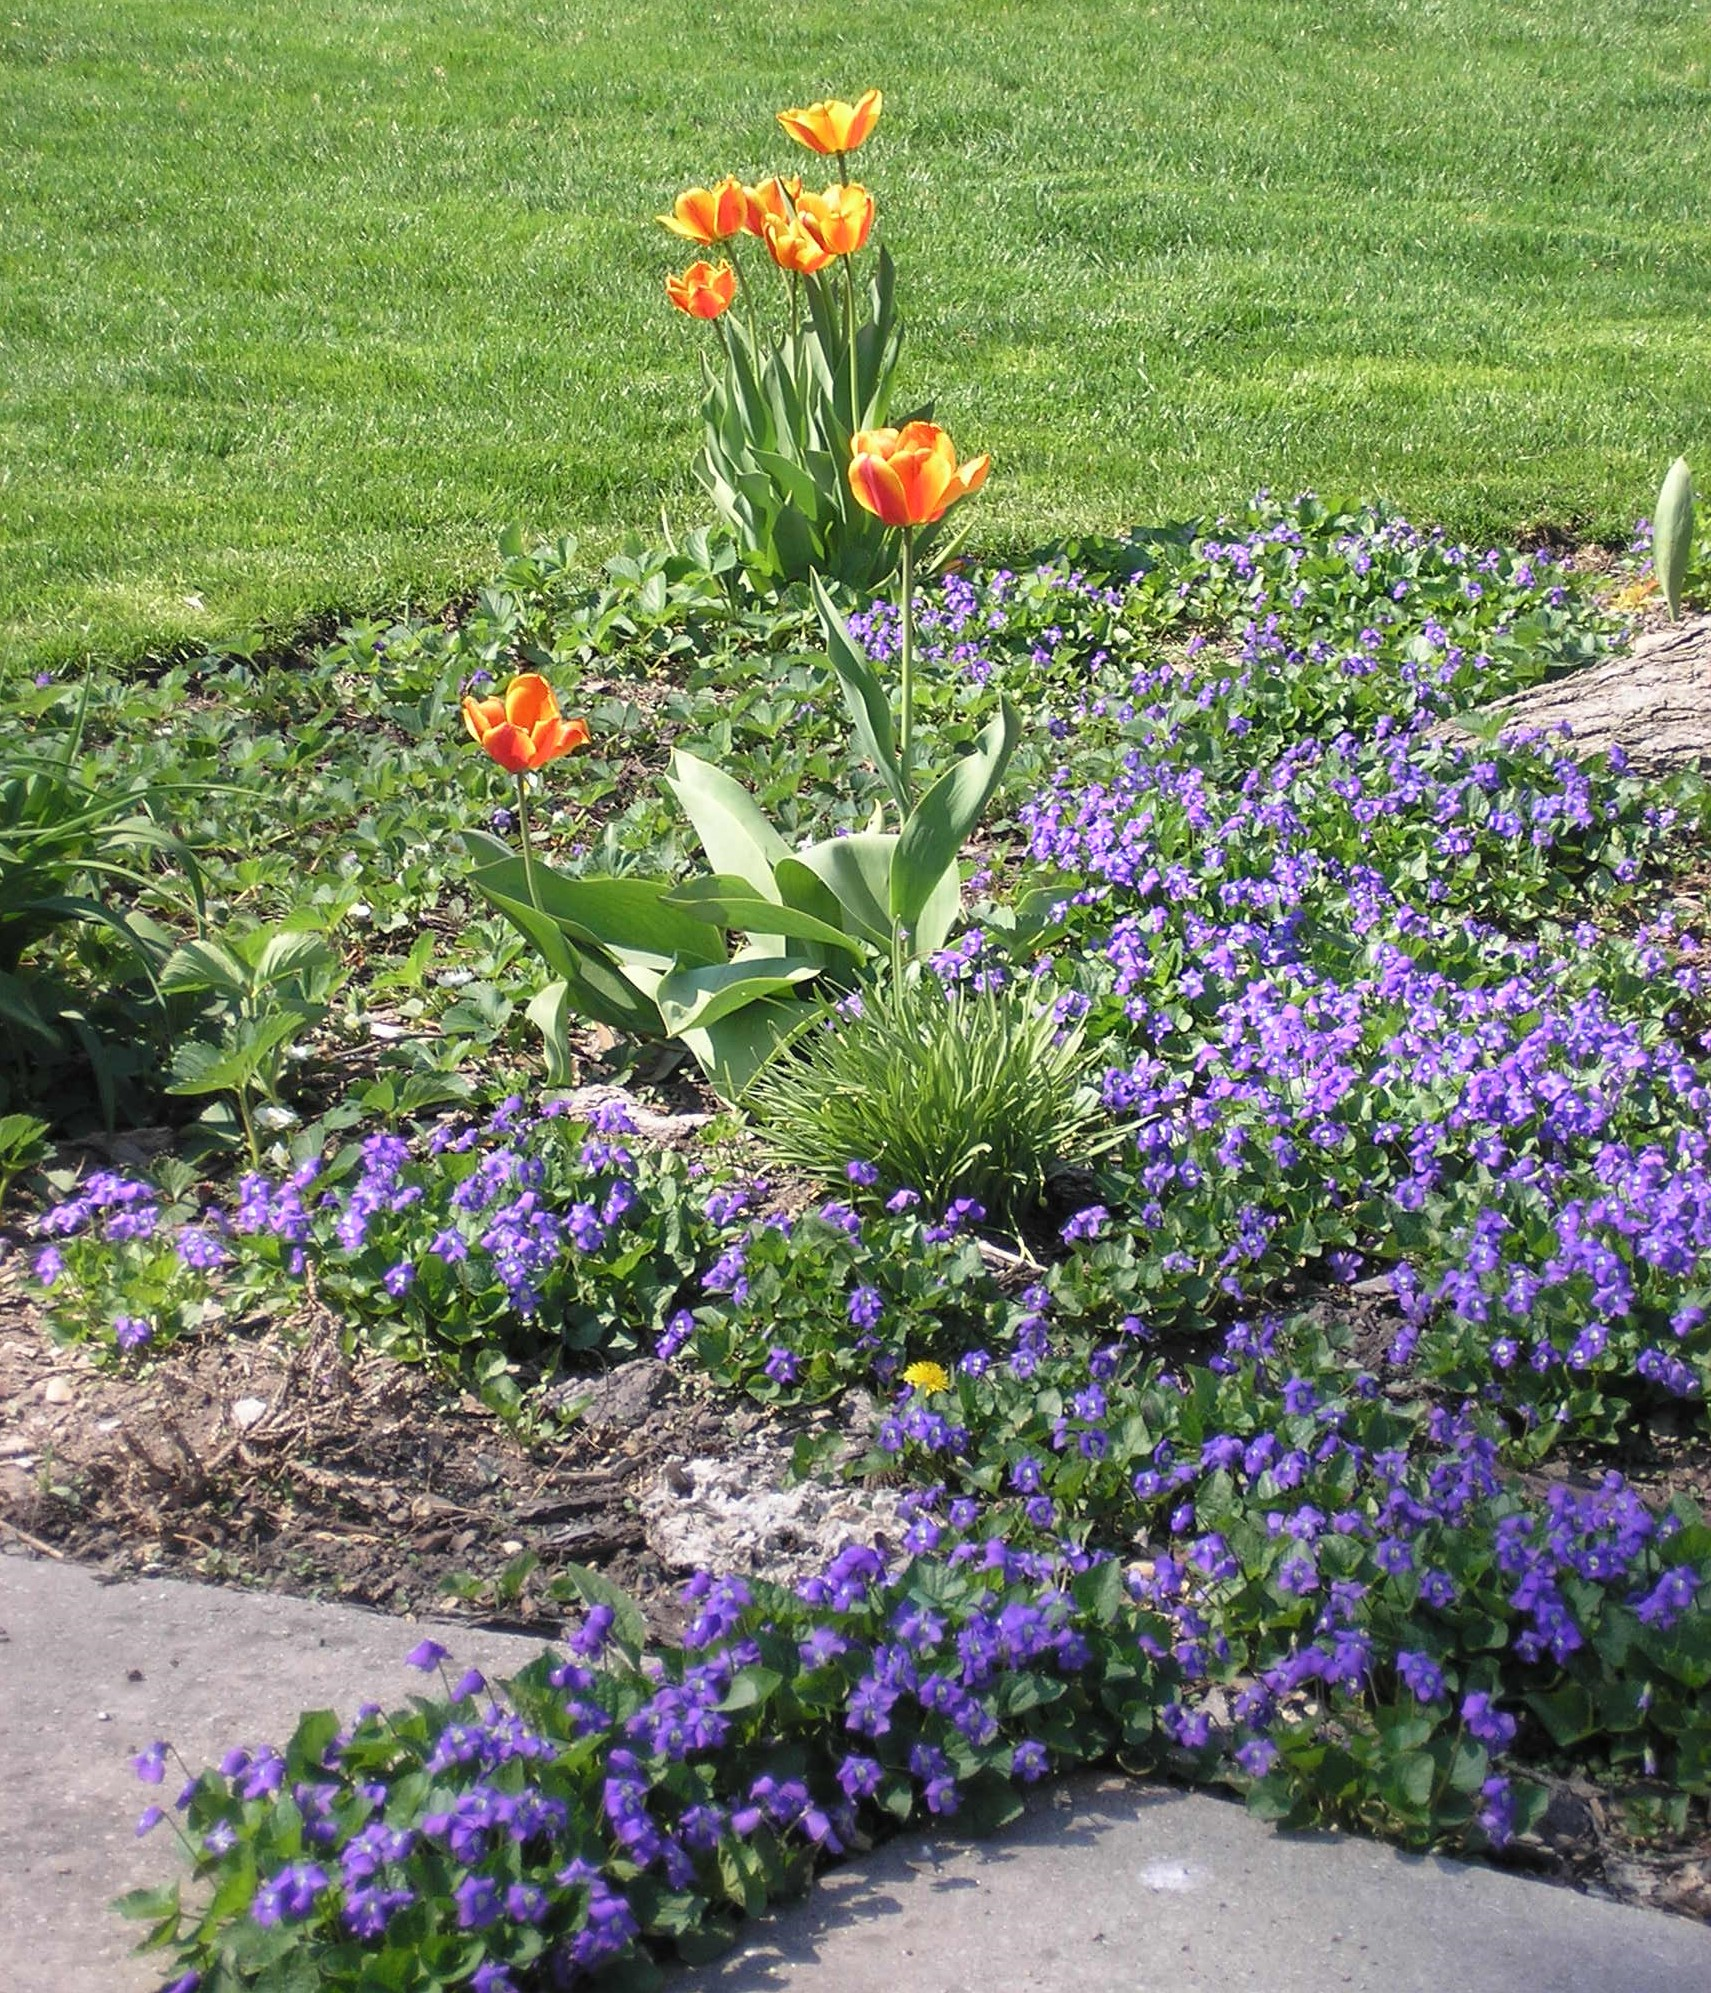 Purple Vinca and Orange Tulips